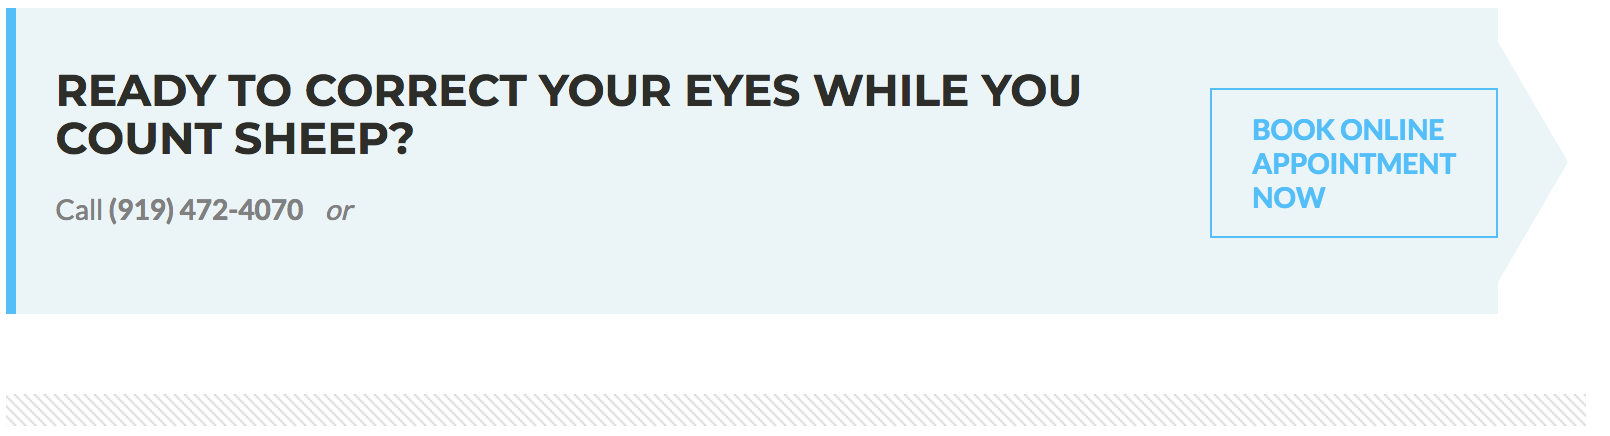 correct your eyes banner